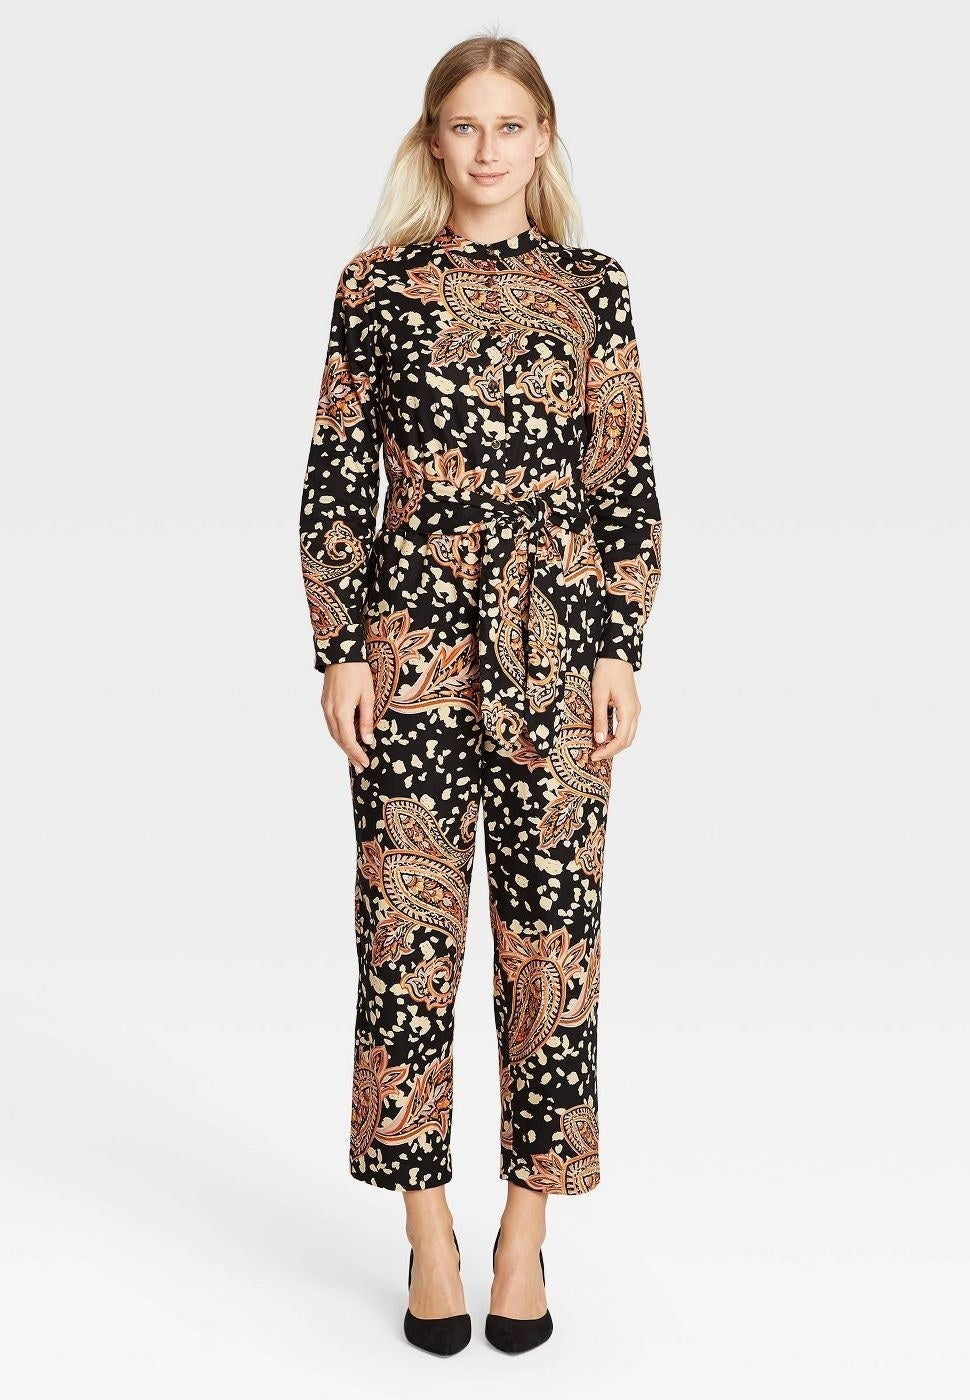 Model in printed jumpsuit